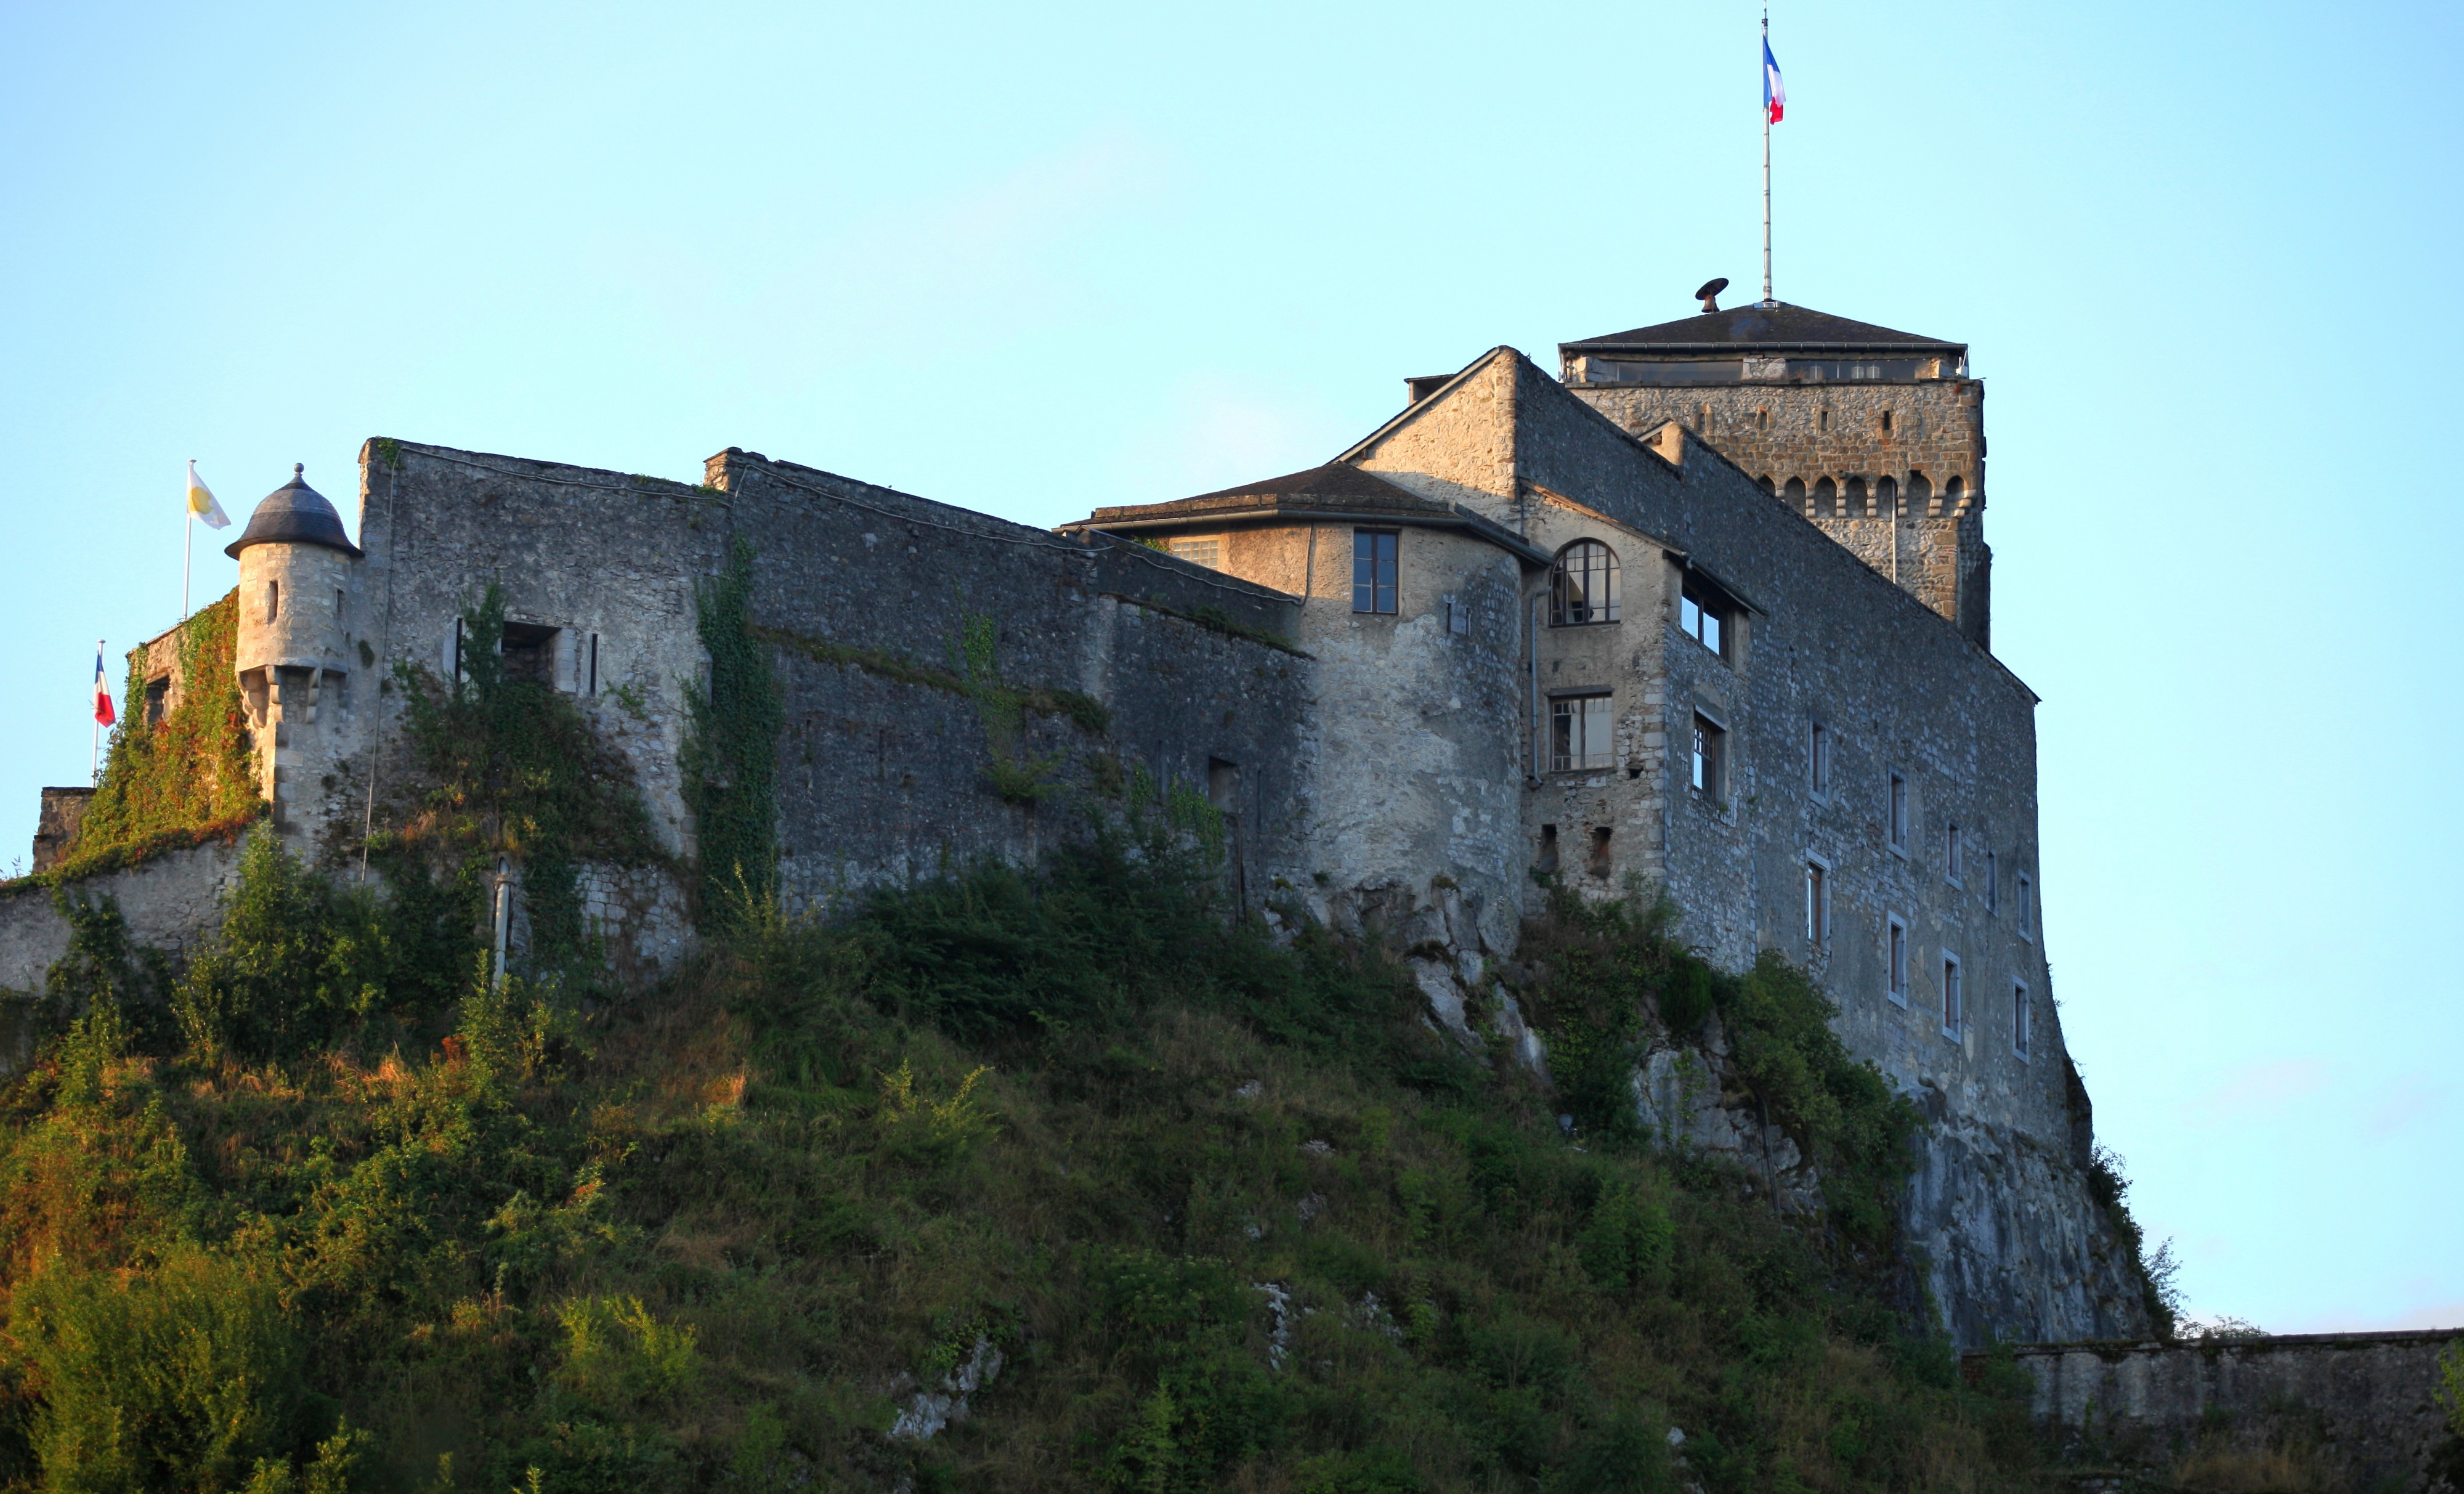 a castle in Lourdes, France, August 2013, picture 3